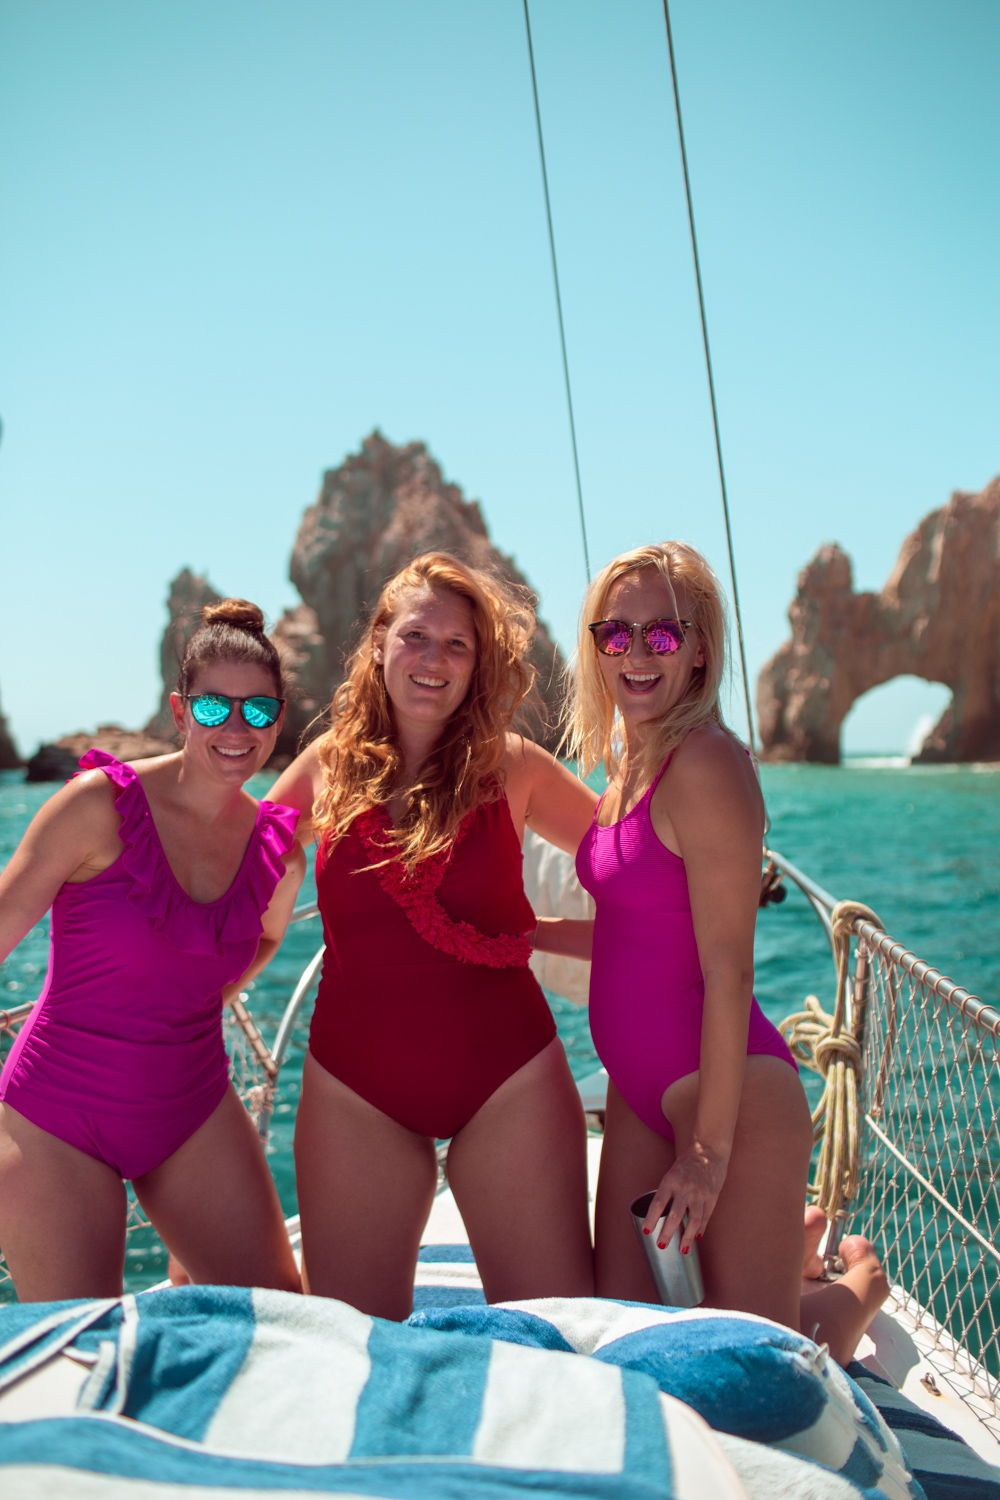 The Best Sailboat Tour In Cabo San Lucas The Best Boat Places To Go And Things To See Cabo Sailing Read More Here Ht Cabo San Lucas San Lucas Boat Girl